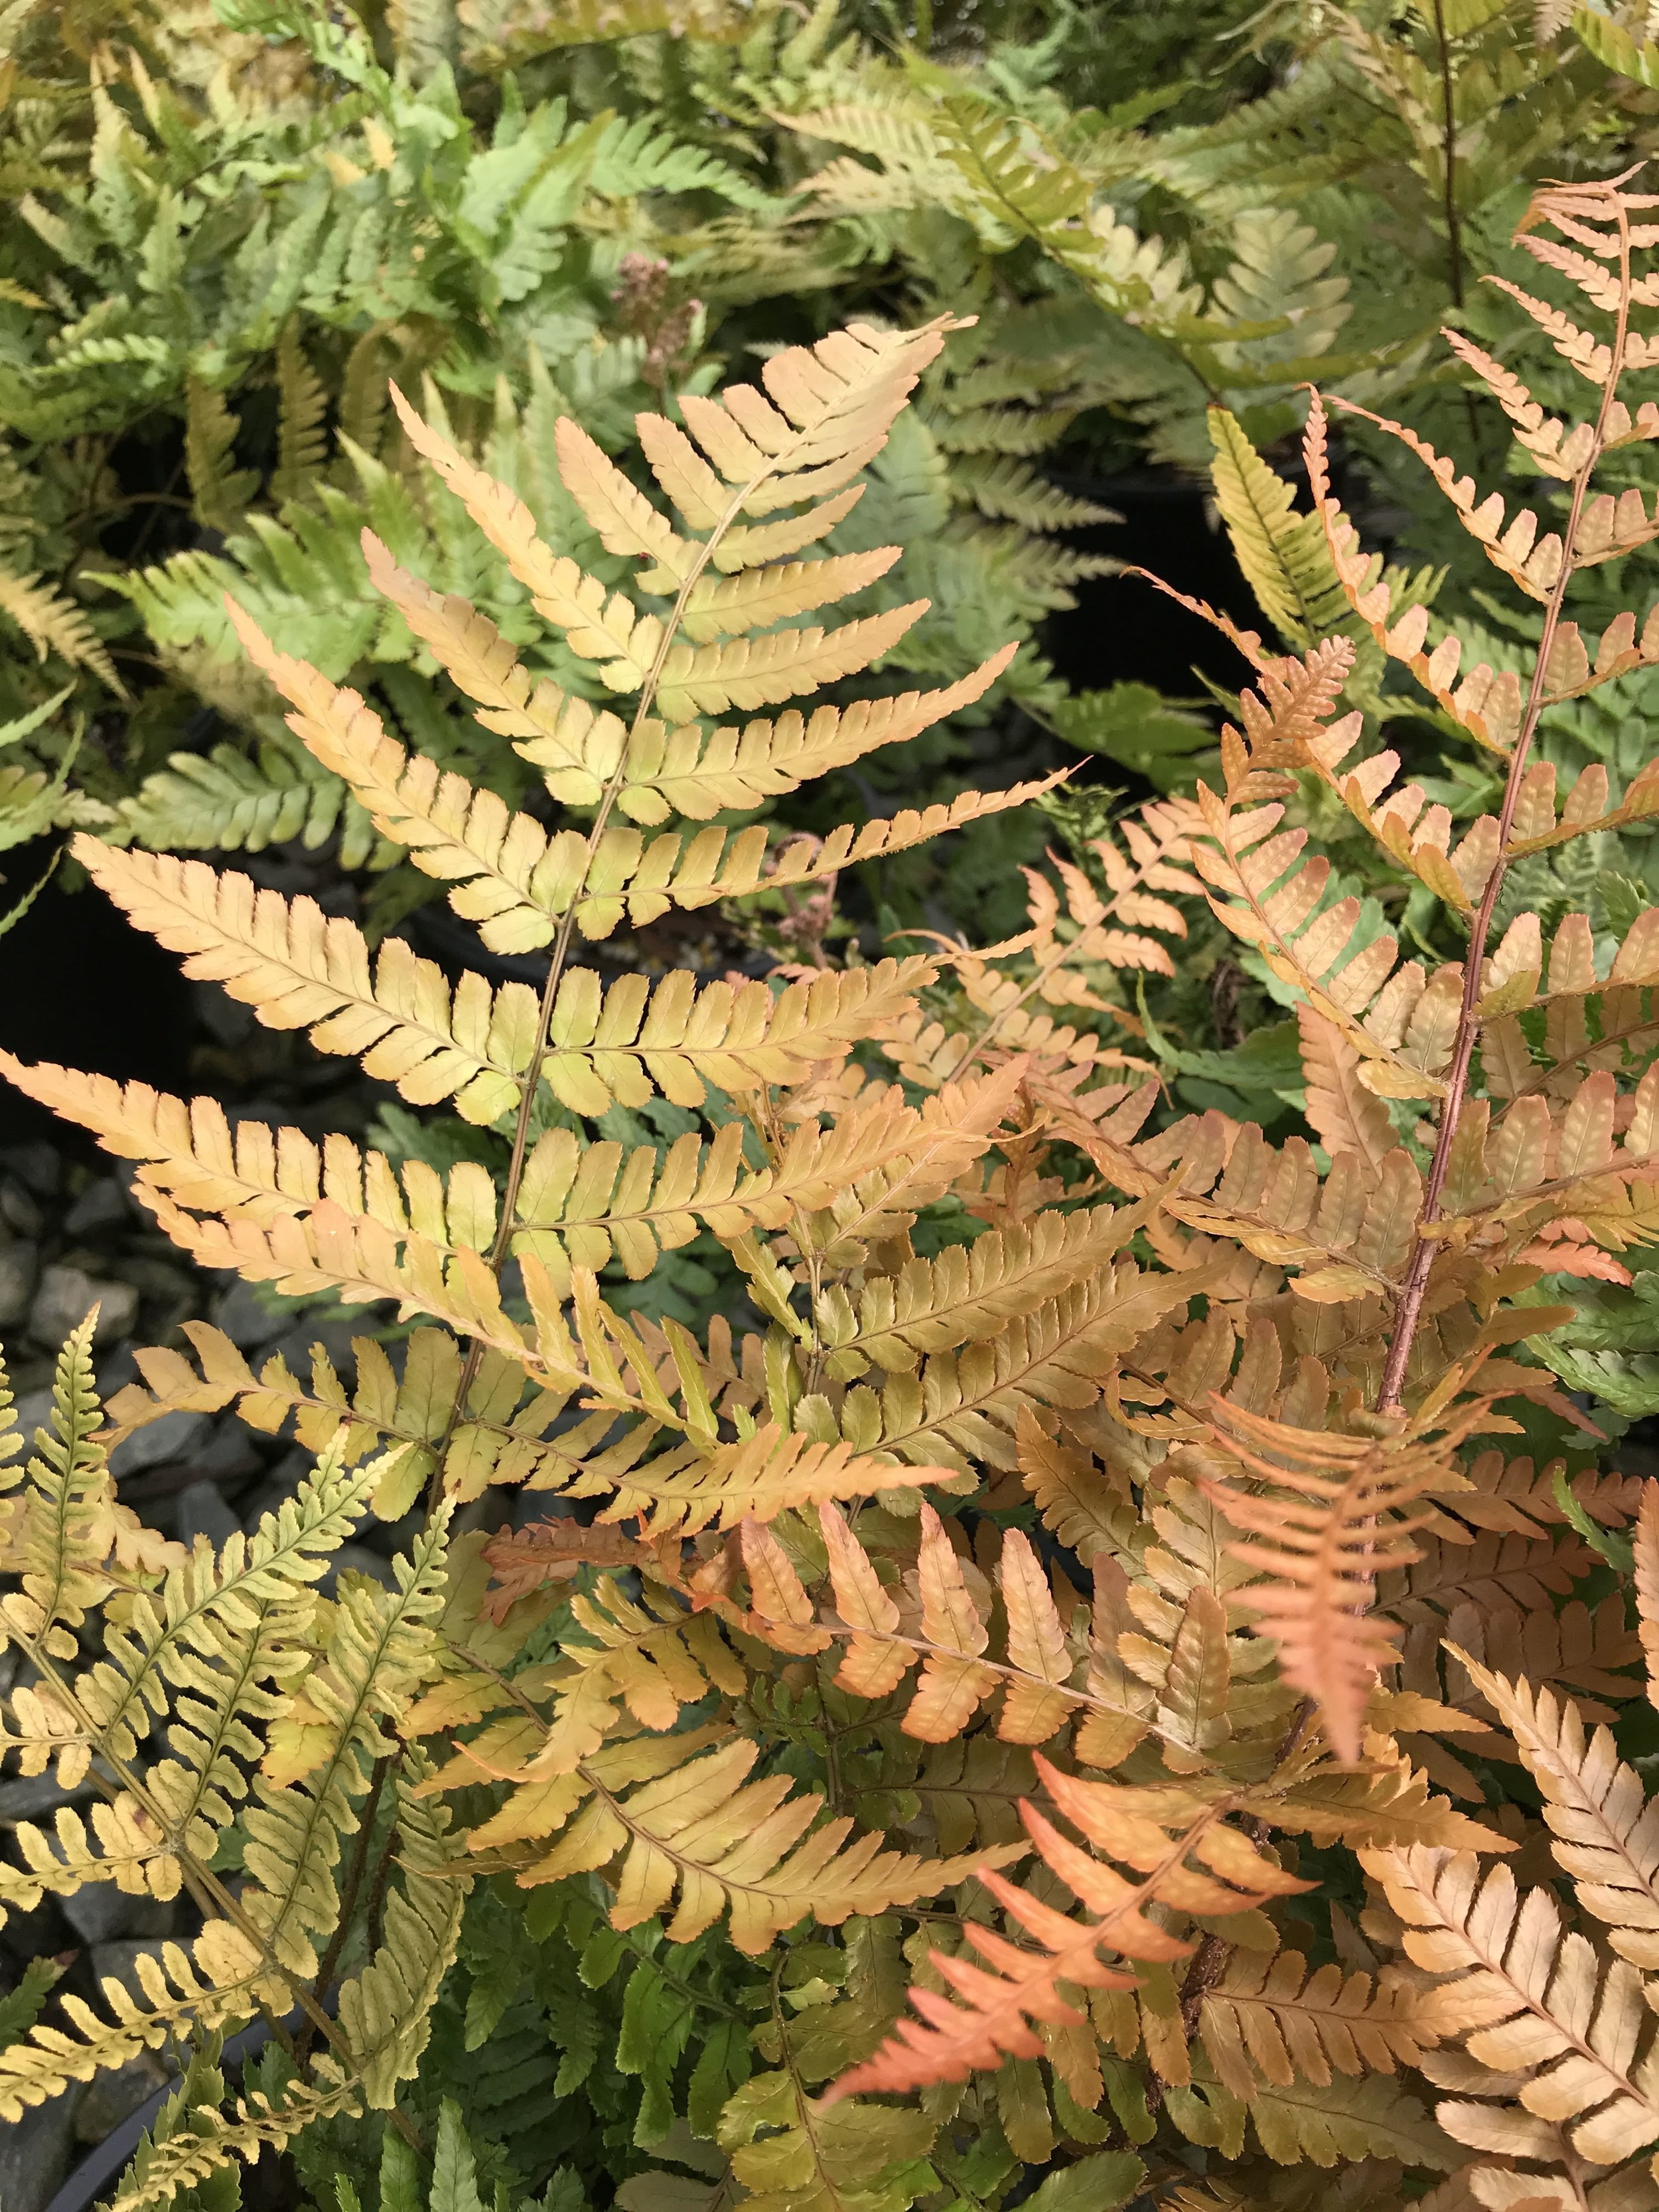 Dryopteris erythrosora 'Brilliance', Brilliance Autumn Fern 1 gallon